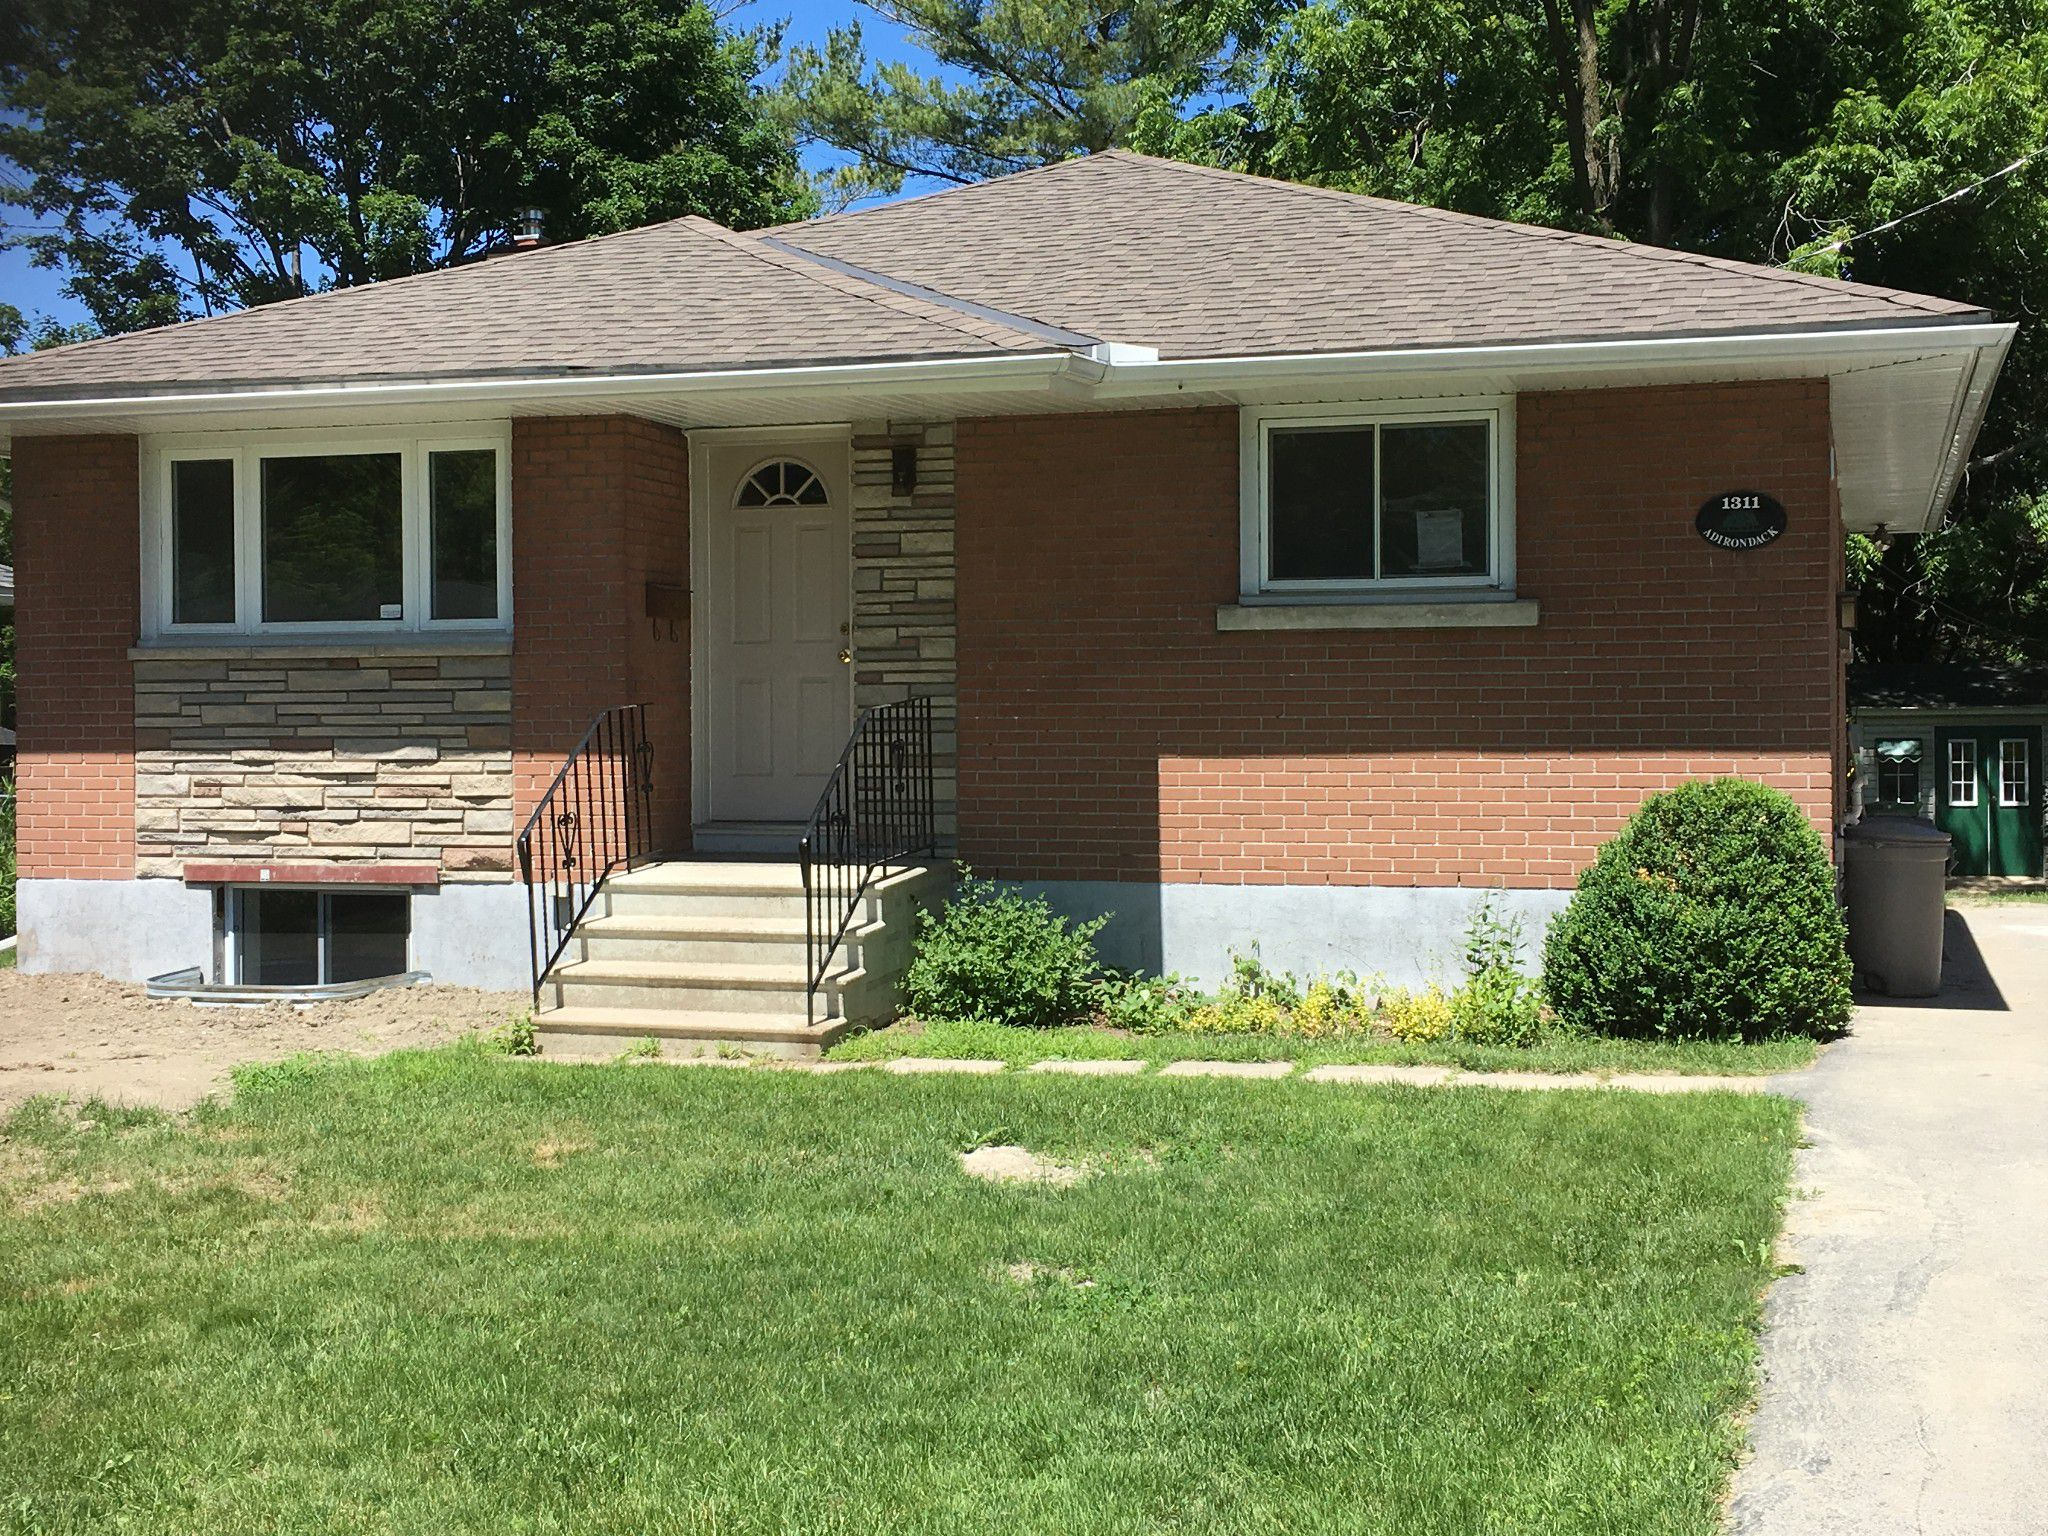 Main Photo: 1311-A Adirondack in Ottawa: Kenson Park House for lease (Algonquin)